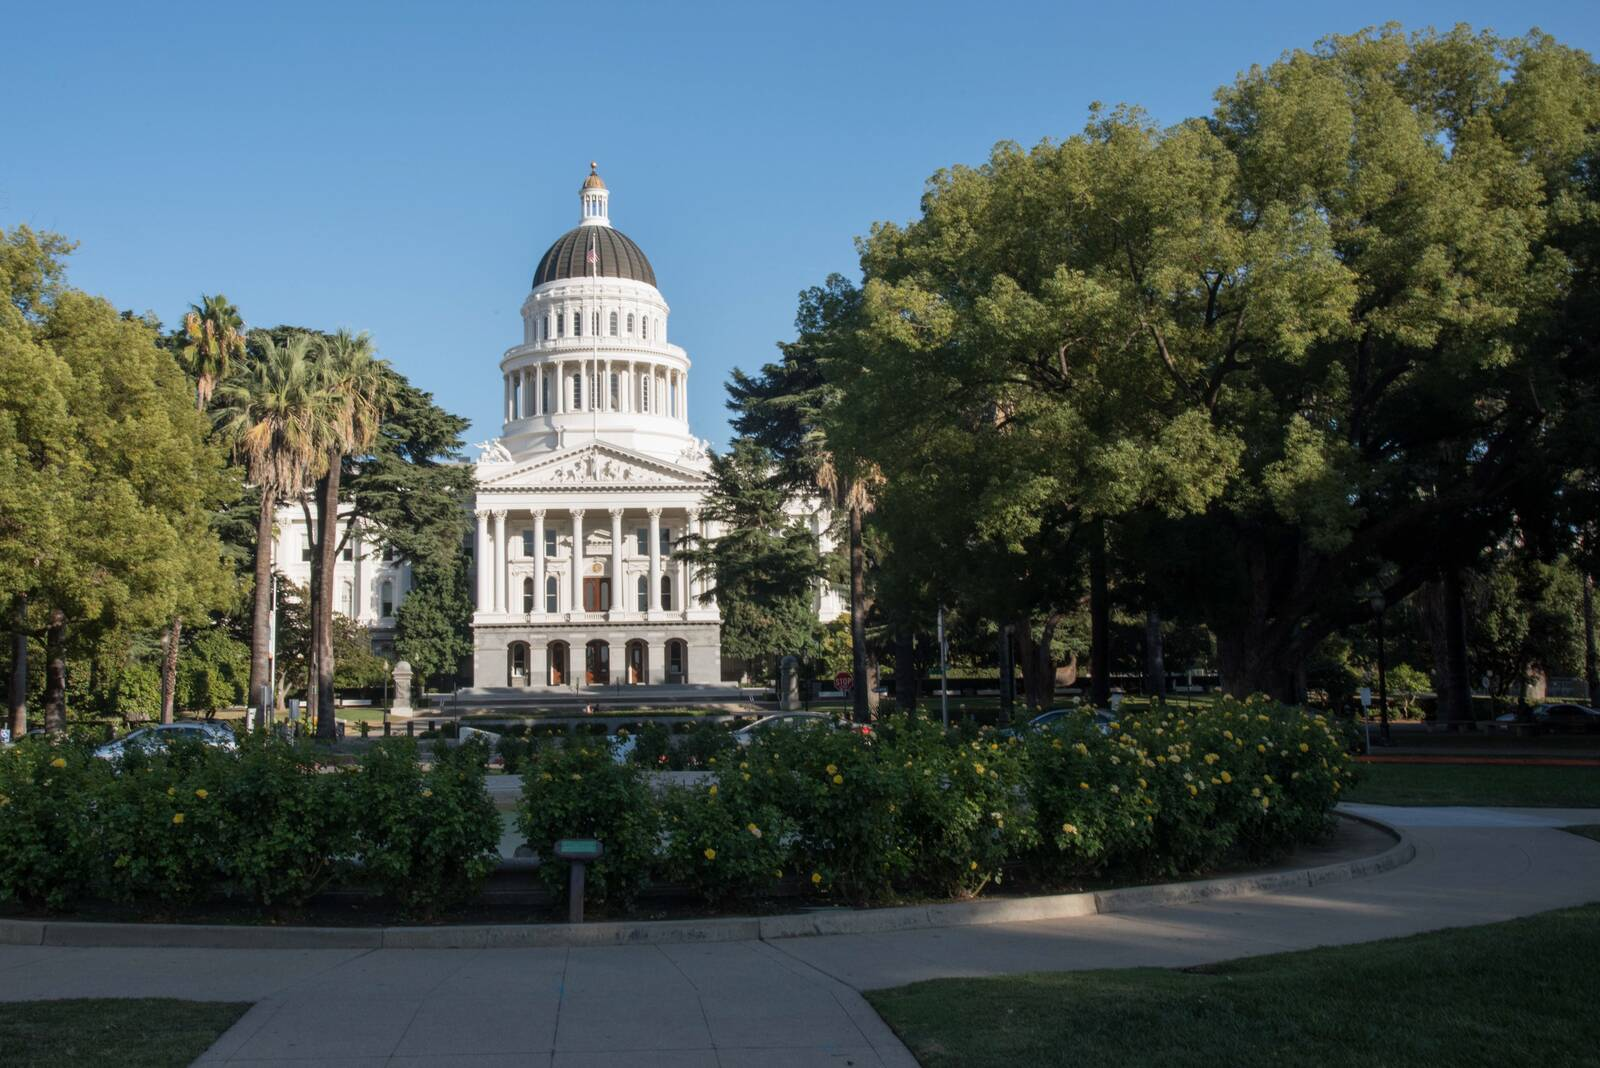 The California sate capitol building is seen in Sacramento. Credit: Education Images/Universal Images Group via Getty Images